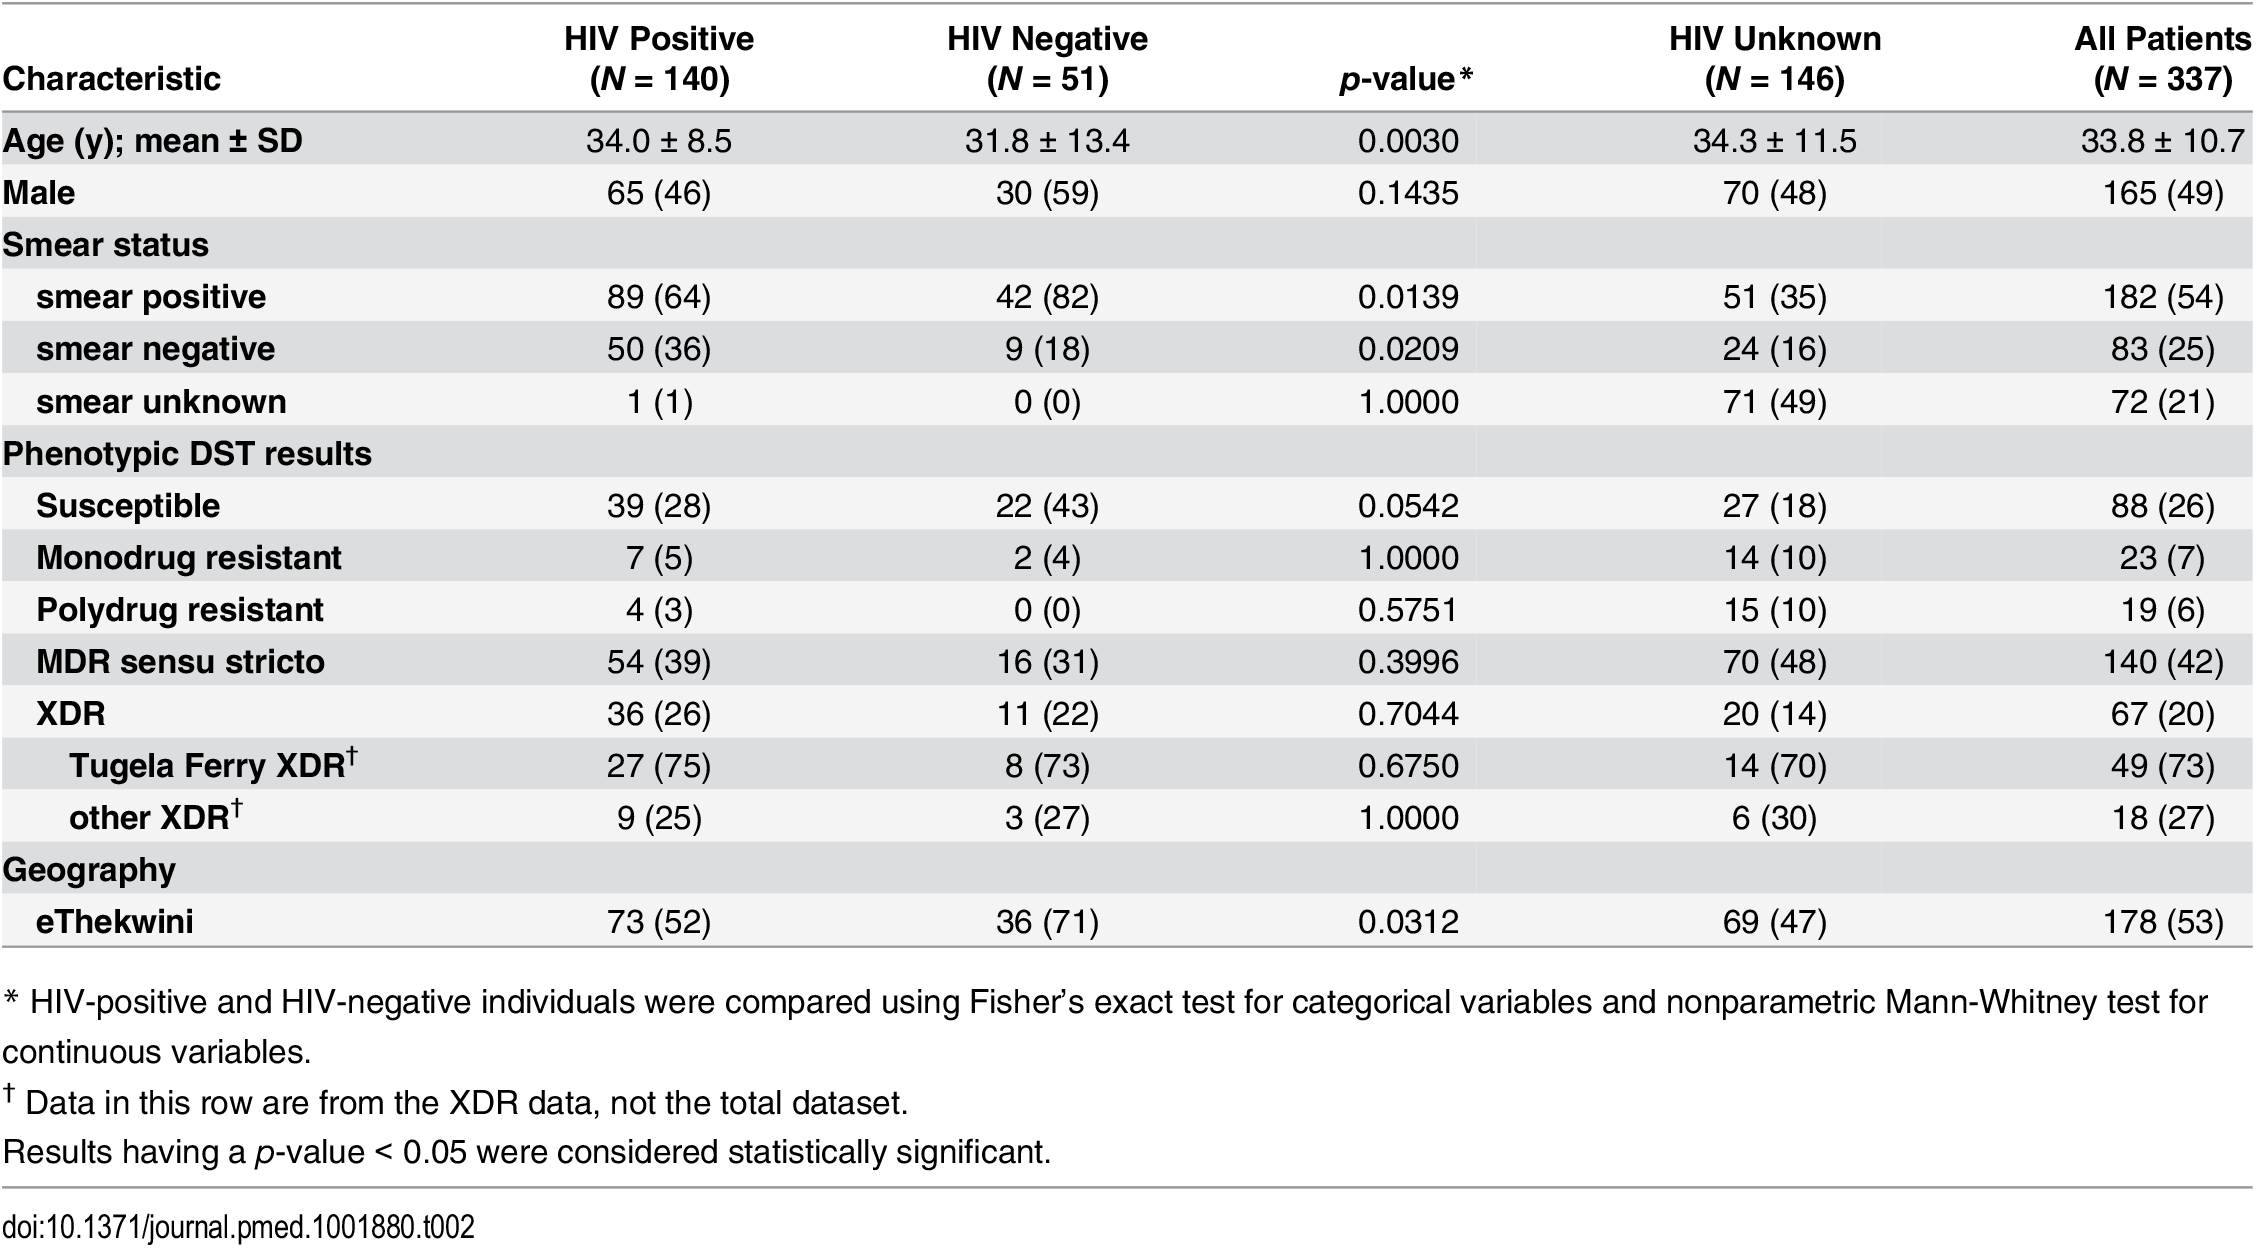 Demographic characteristics of participants and phenotypic drug susceptibility of strains.